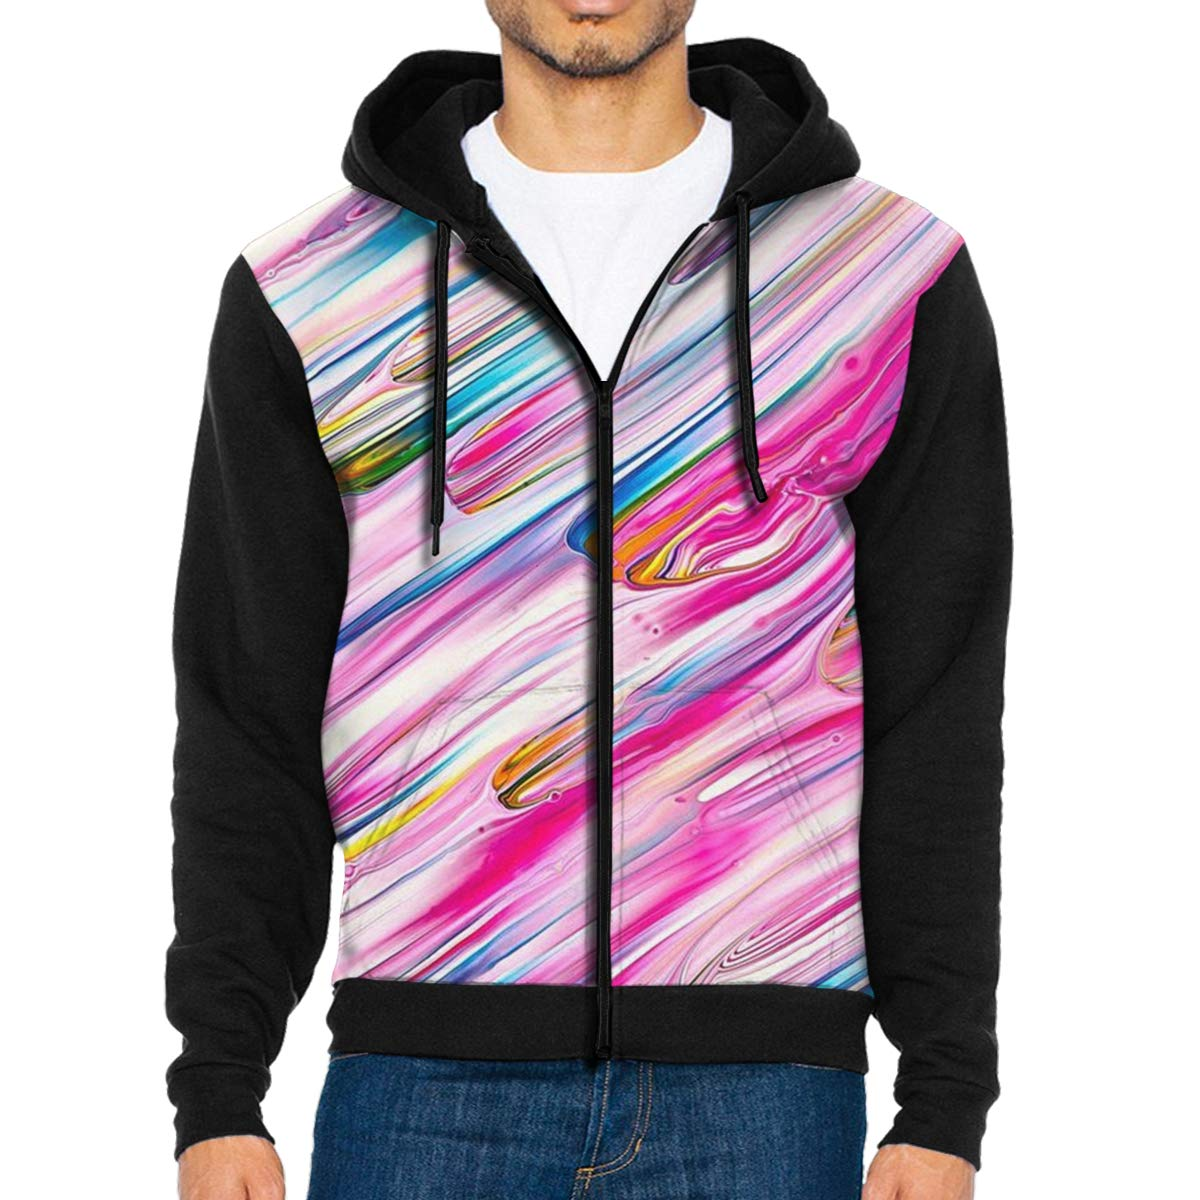 MHBGMYES Color Mixture Lightweight Mans Jacket with Hood Long Sleeved Zippered Outwear